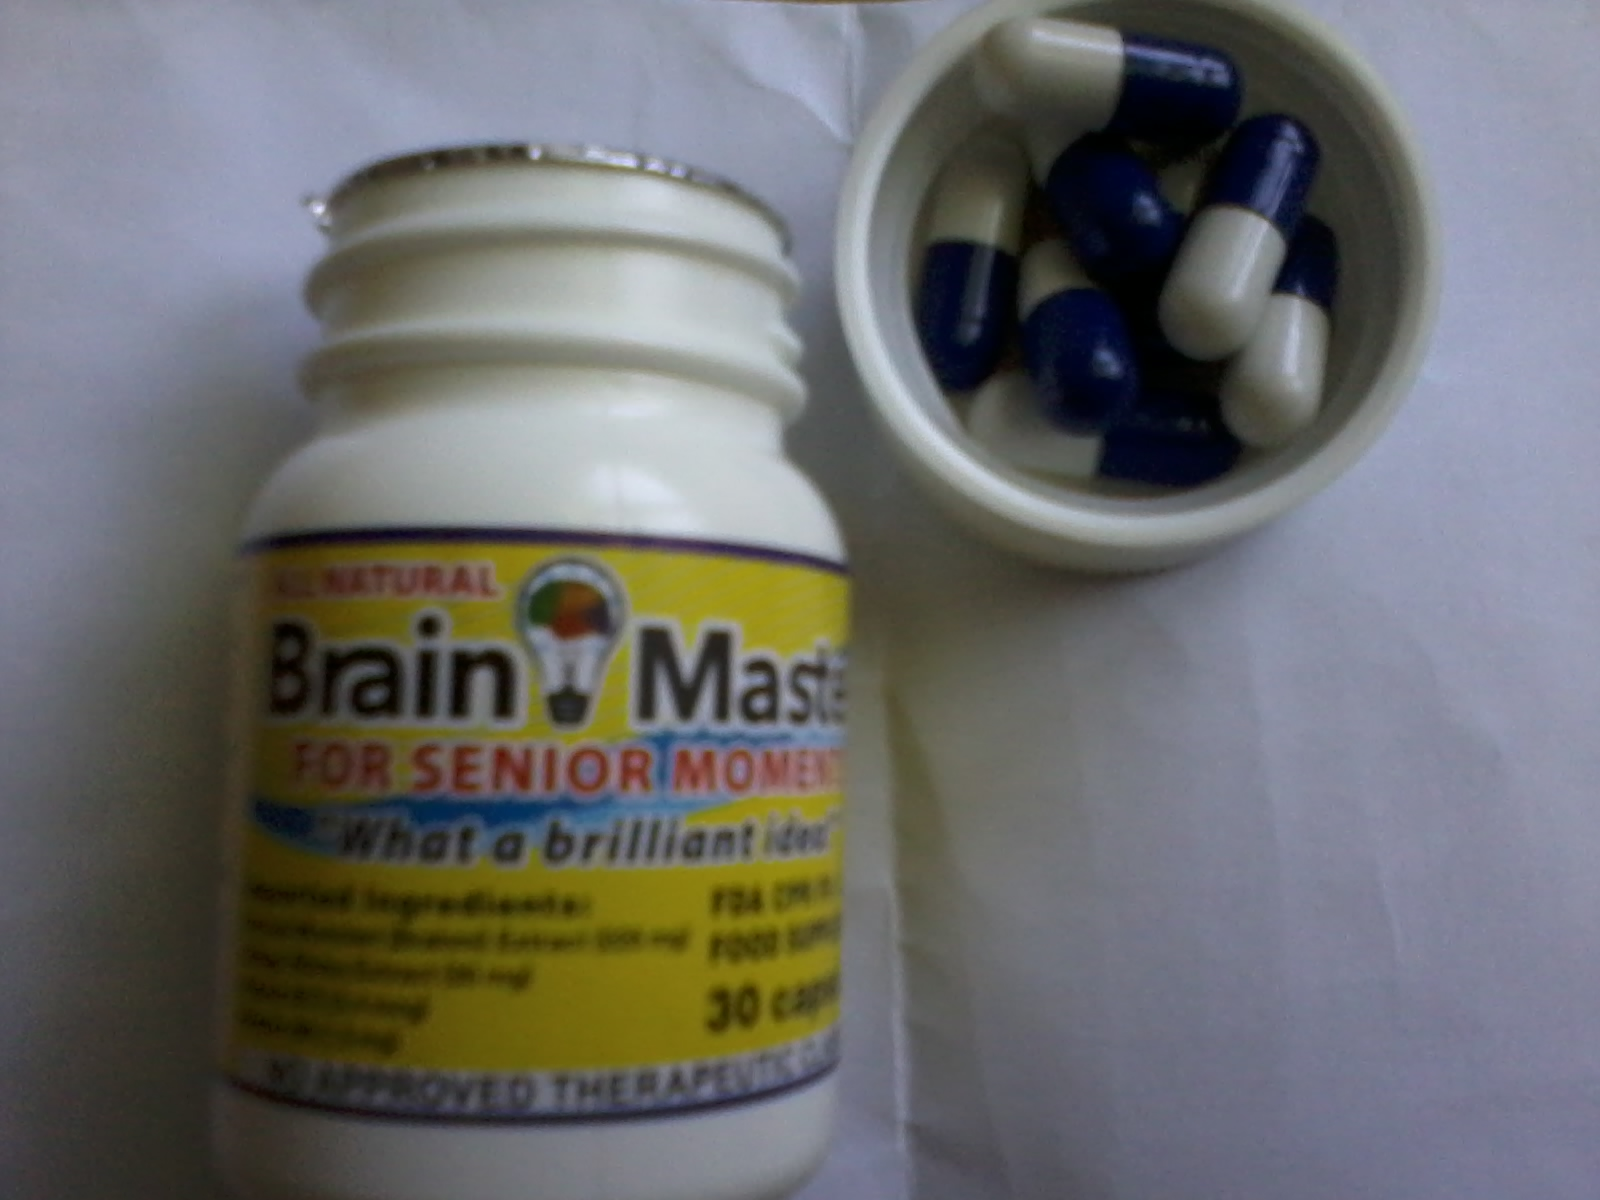 Medicine that can cause memory loss picture 1